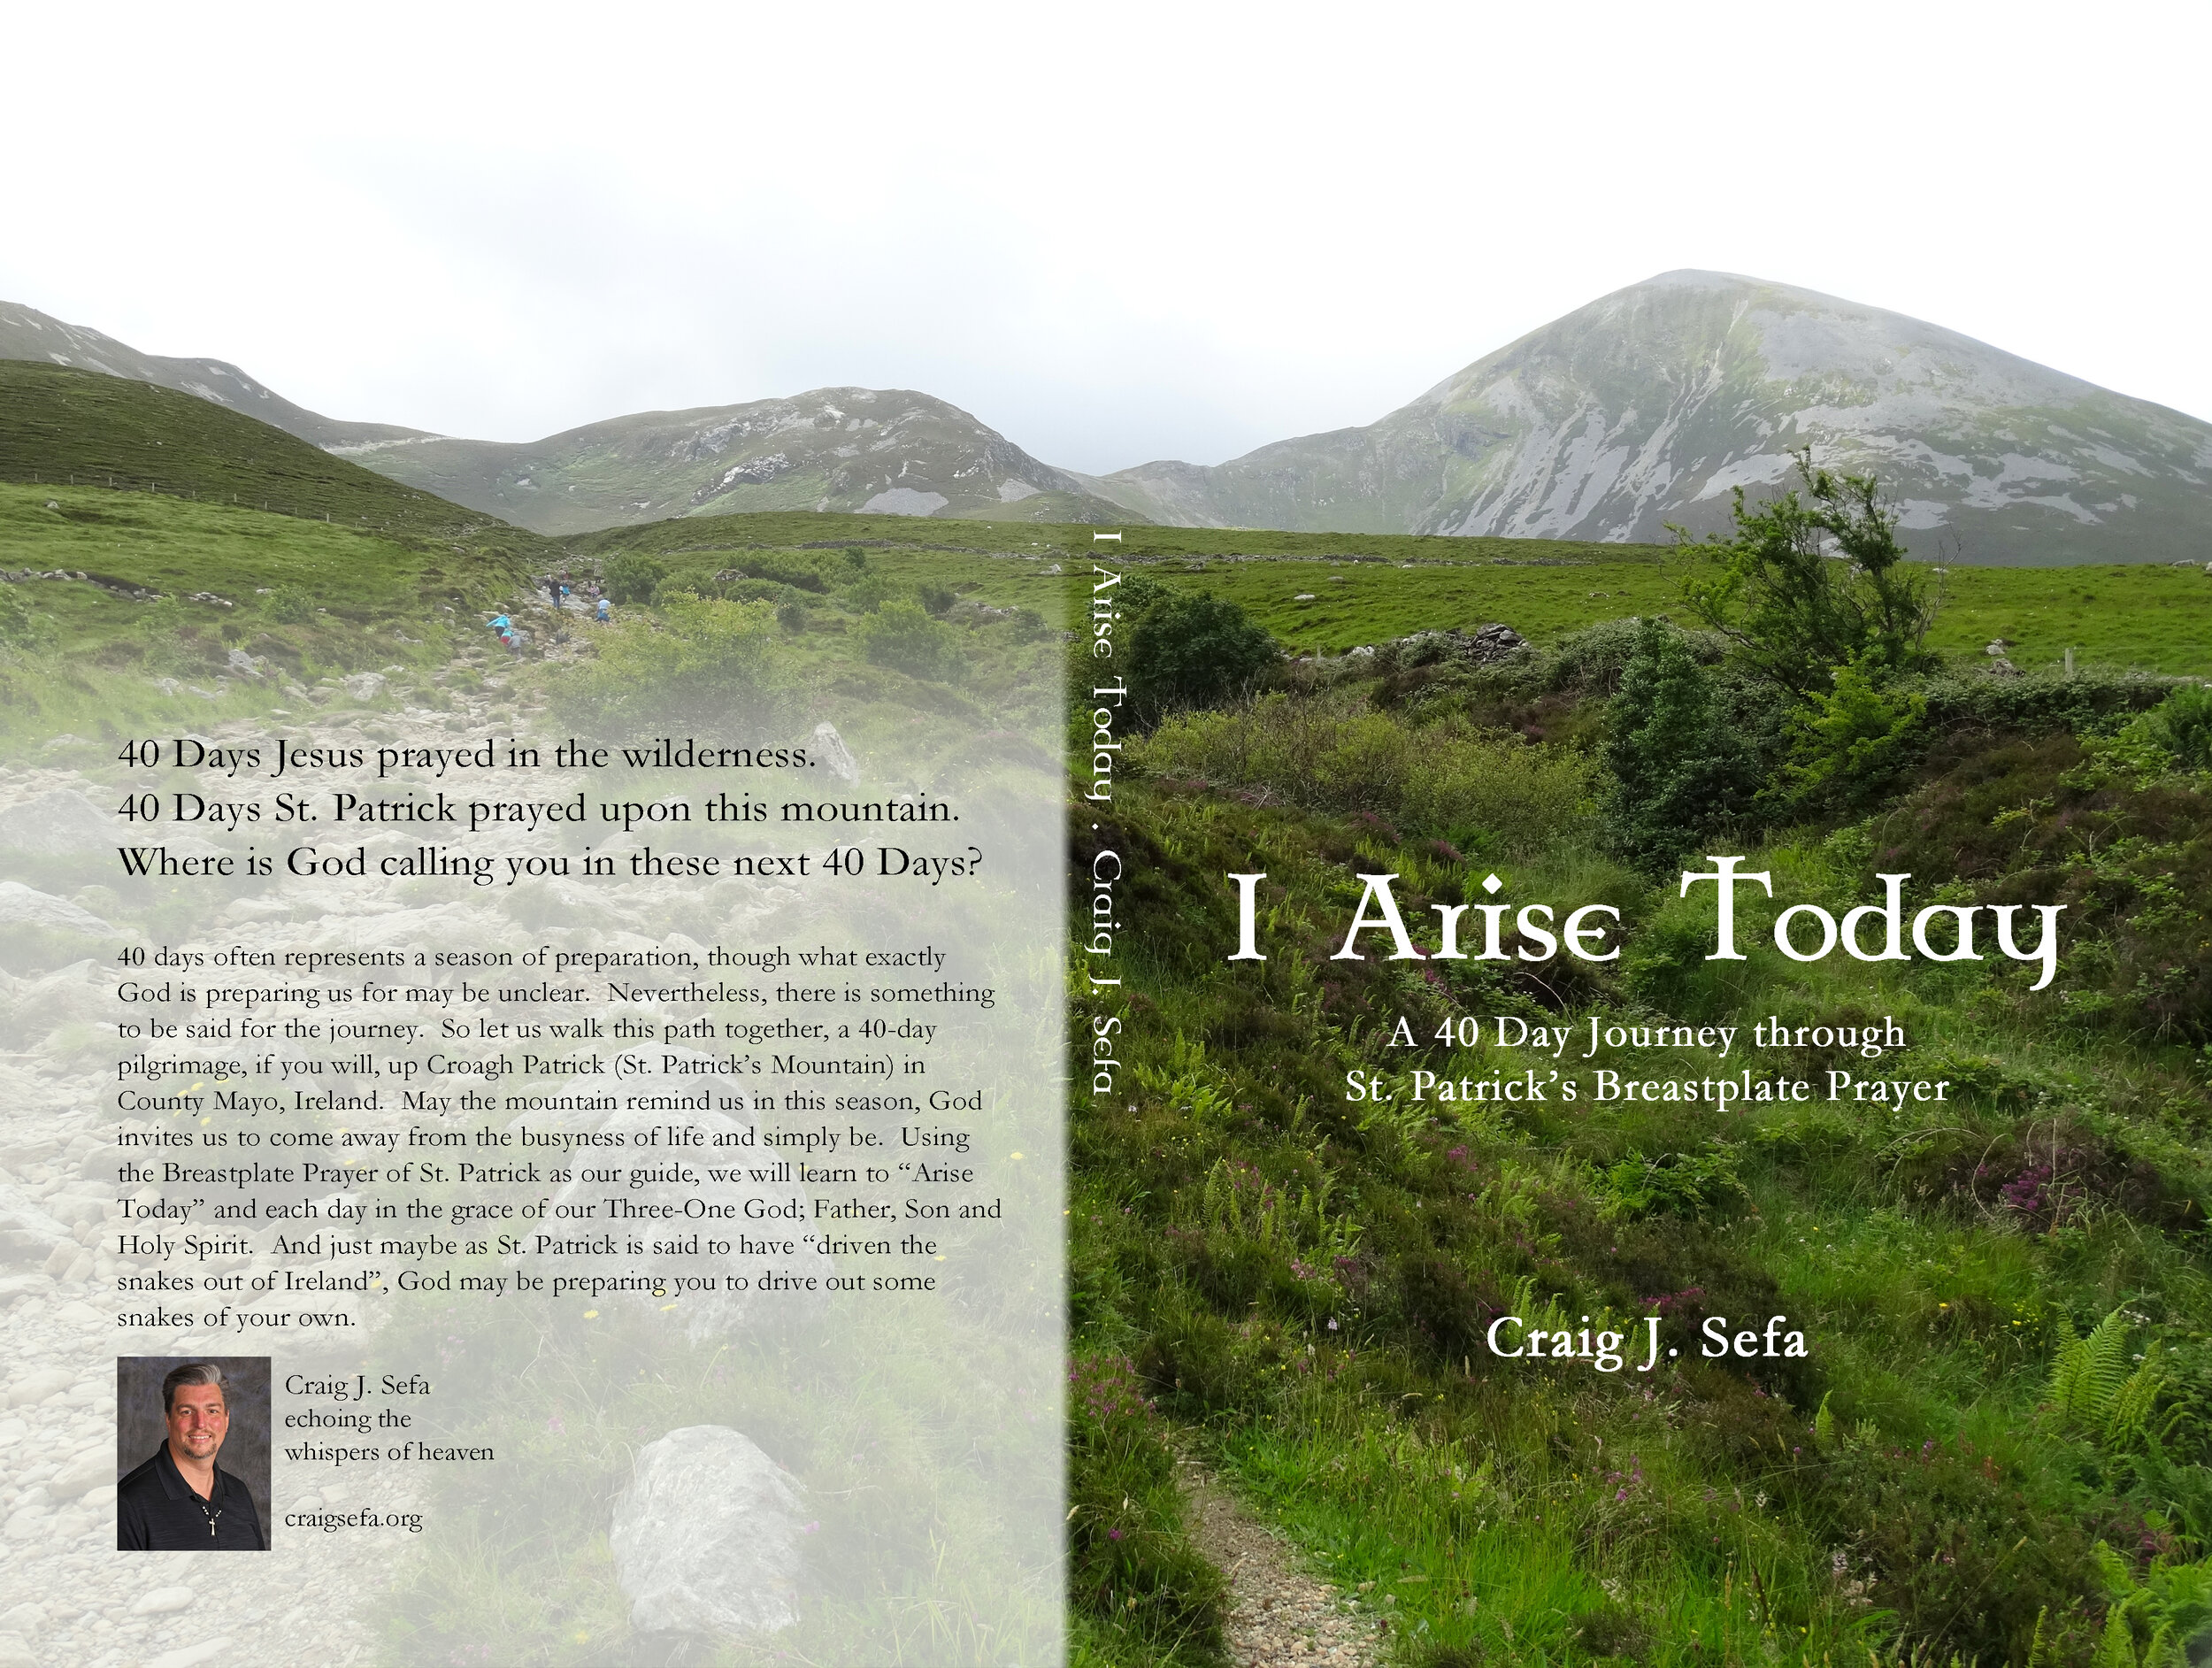 Coming Soon - I Arise Today: A 40 Day Journey through St. Patrick's Breastplate PrayerAvailable in paperback and Kindle e-book through Amazon.